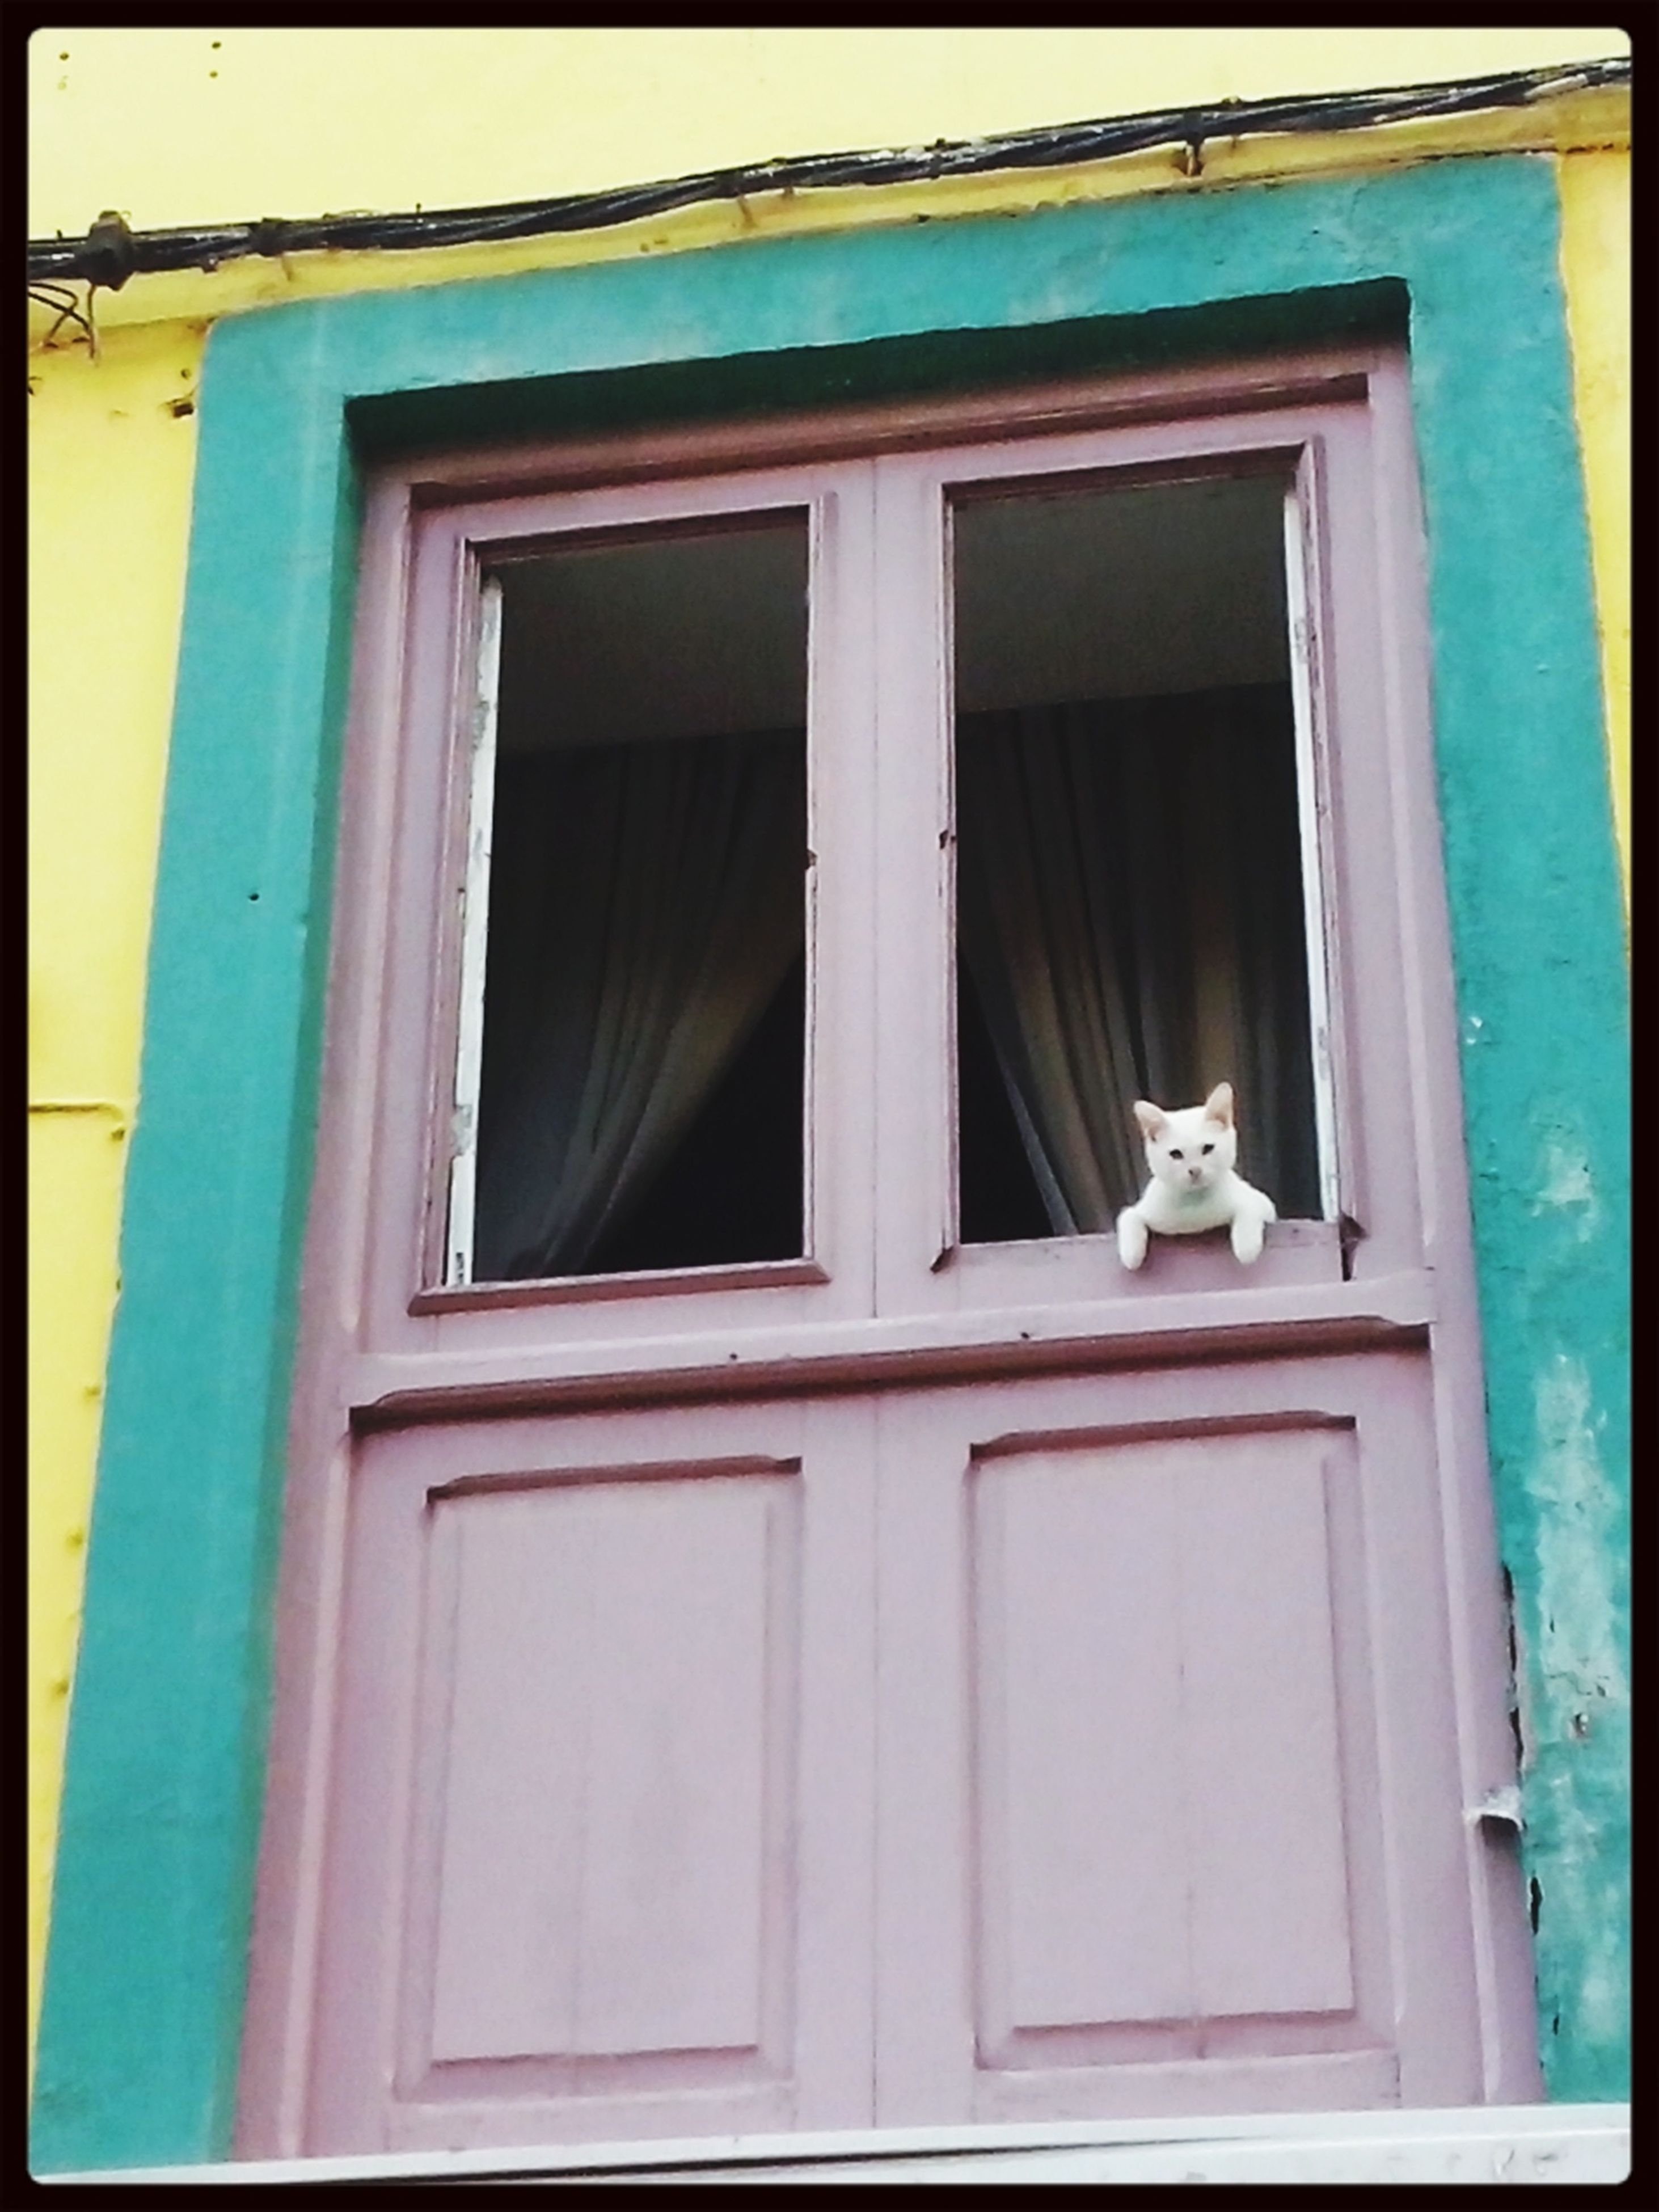 animal themes, building exterior, window, one animal, built structure, architecture, door, house, blue, closed, wildlife, bird, pets, transfer print, residential structure, domestic animals, day, animals in the wild, outdoors, residential building